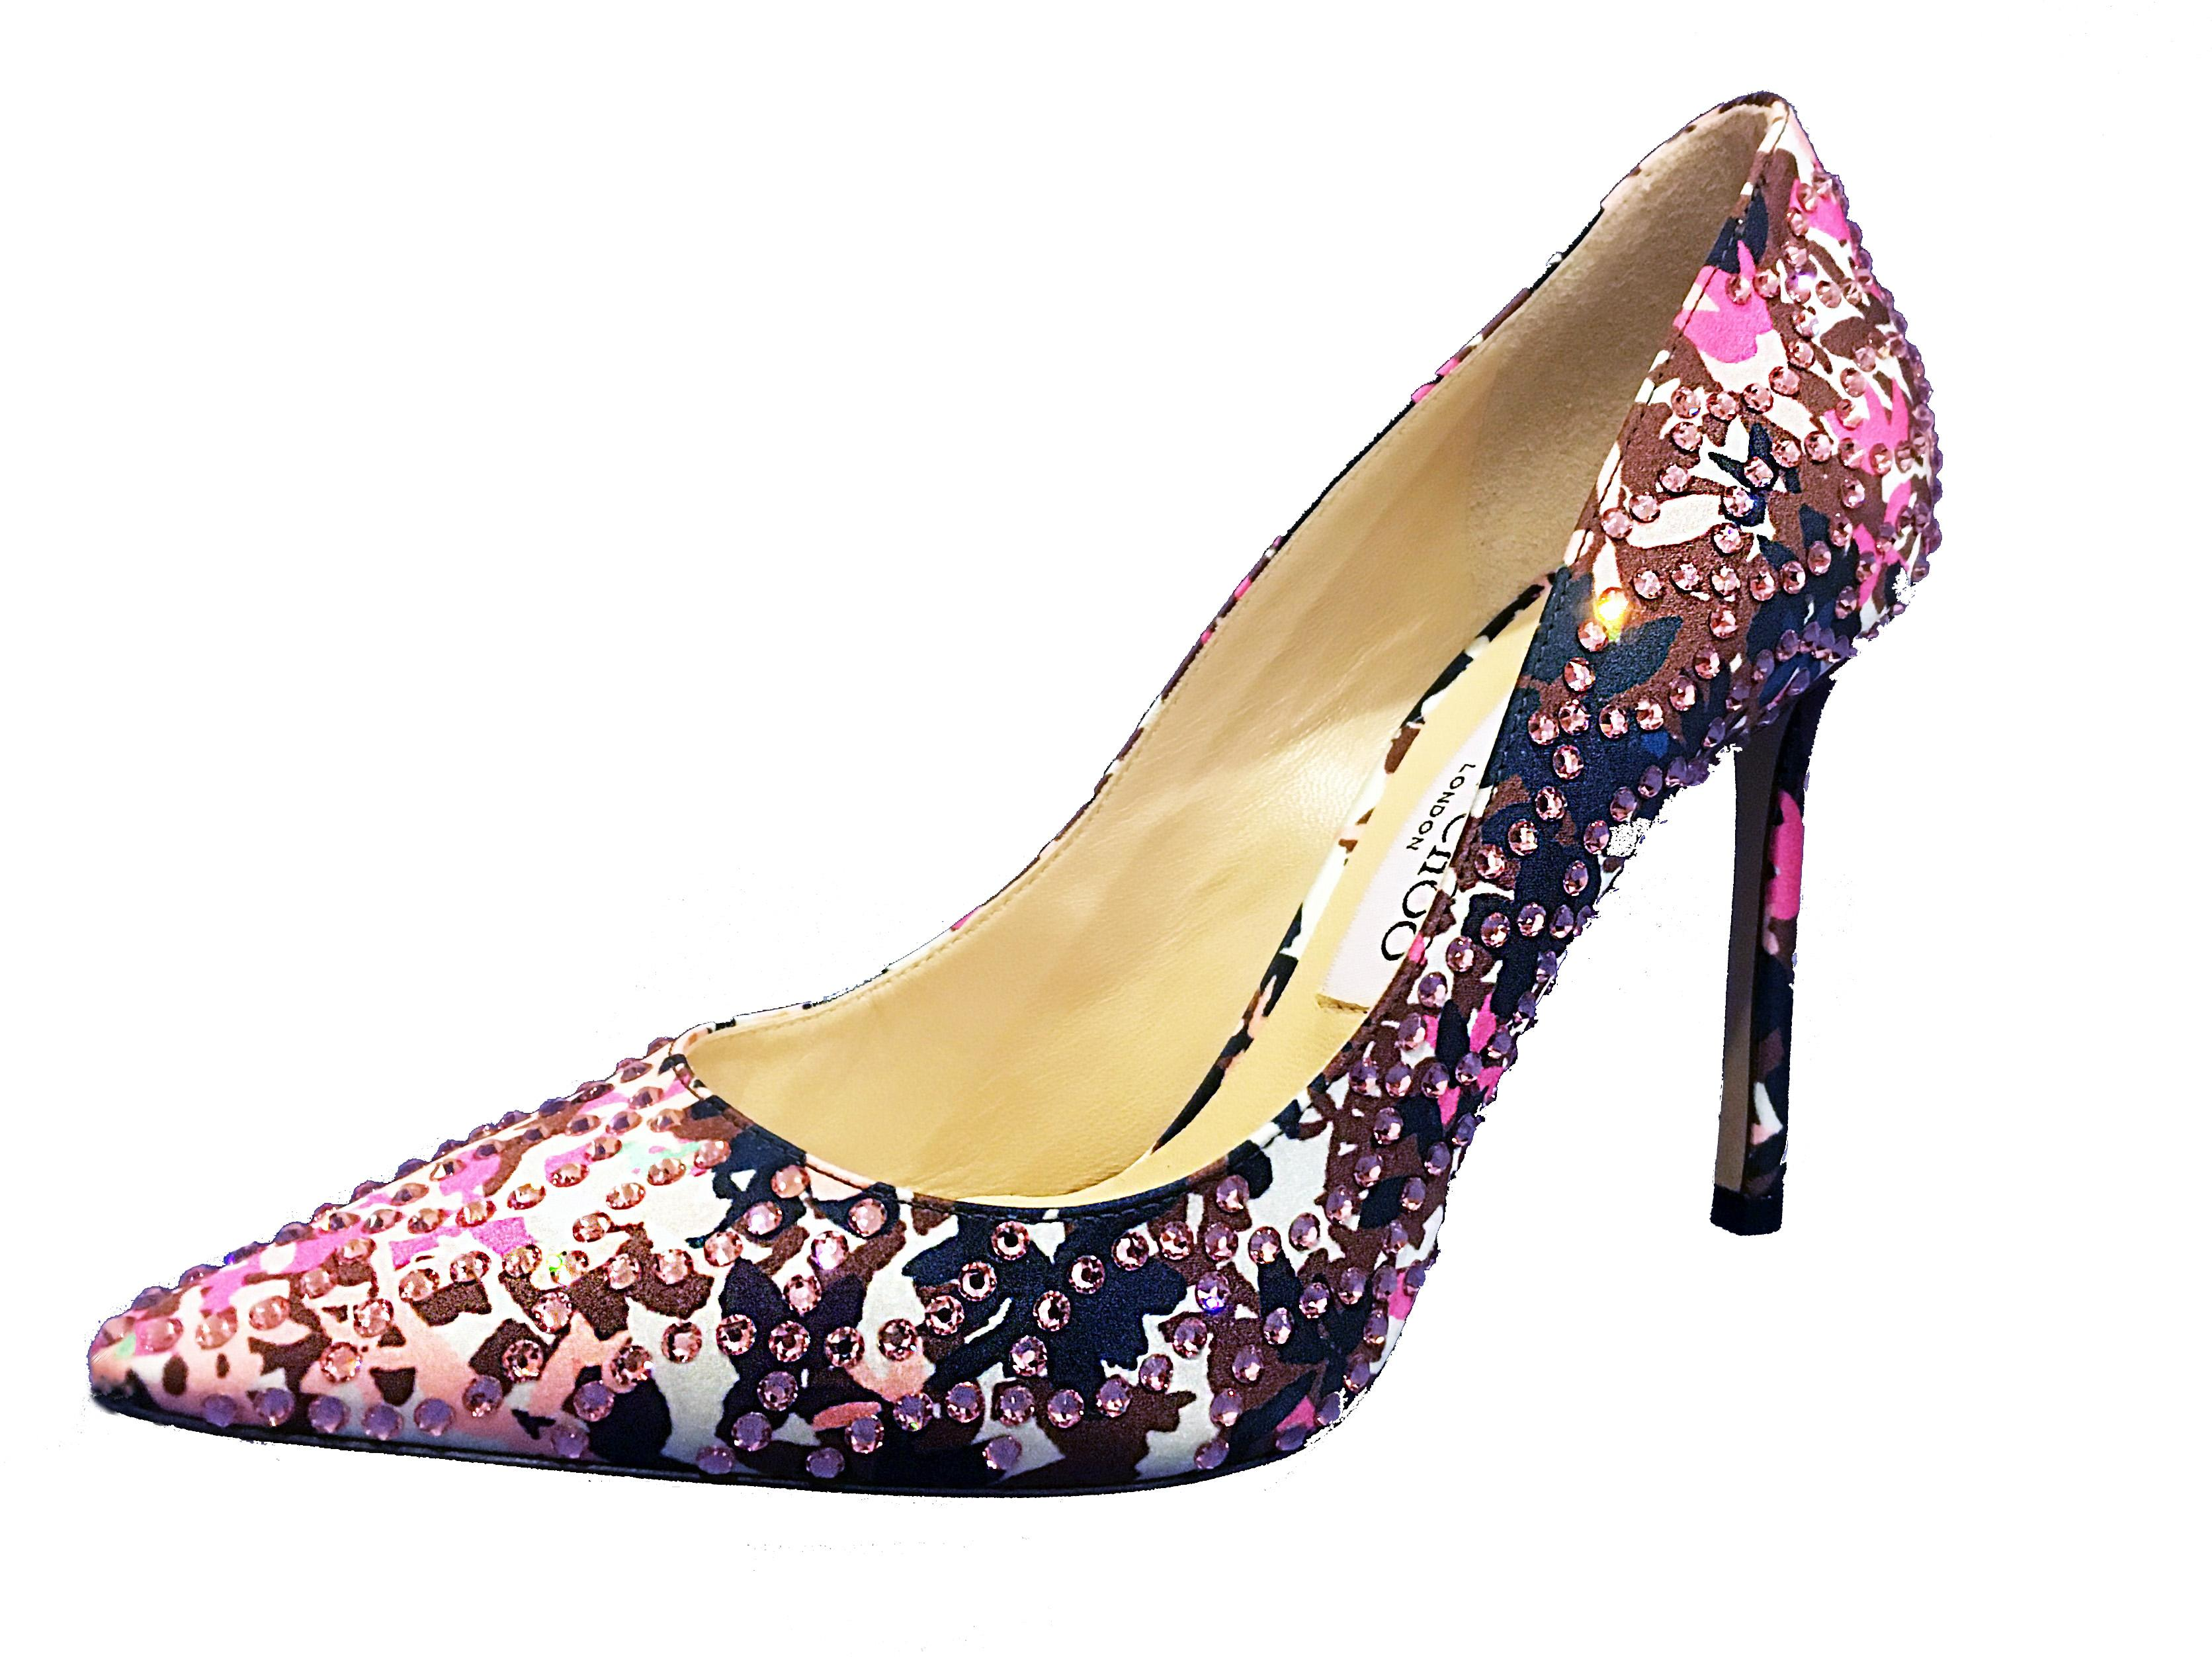 Jimmy Choo Floral ( Pink. Black & White) Romy Pointed-toe 100mm Pumps Size US 7.5 Regular (M, B)